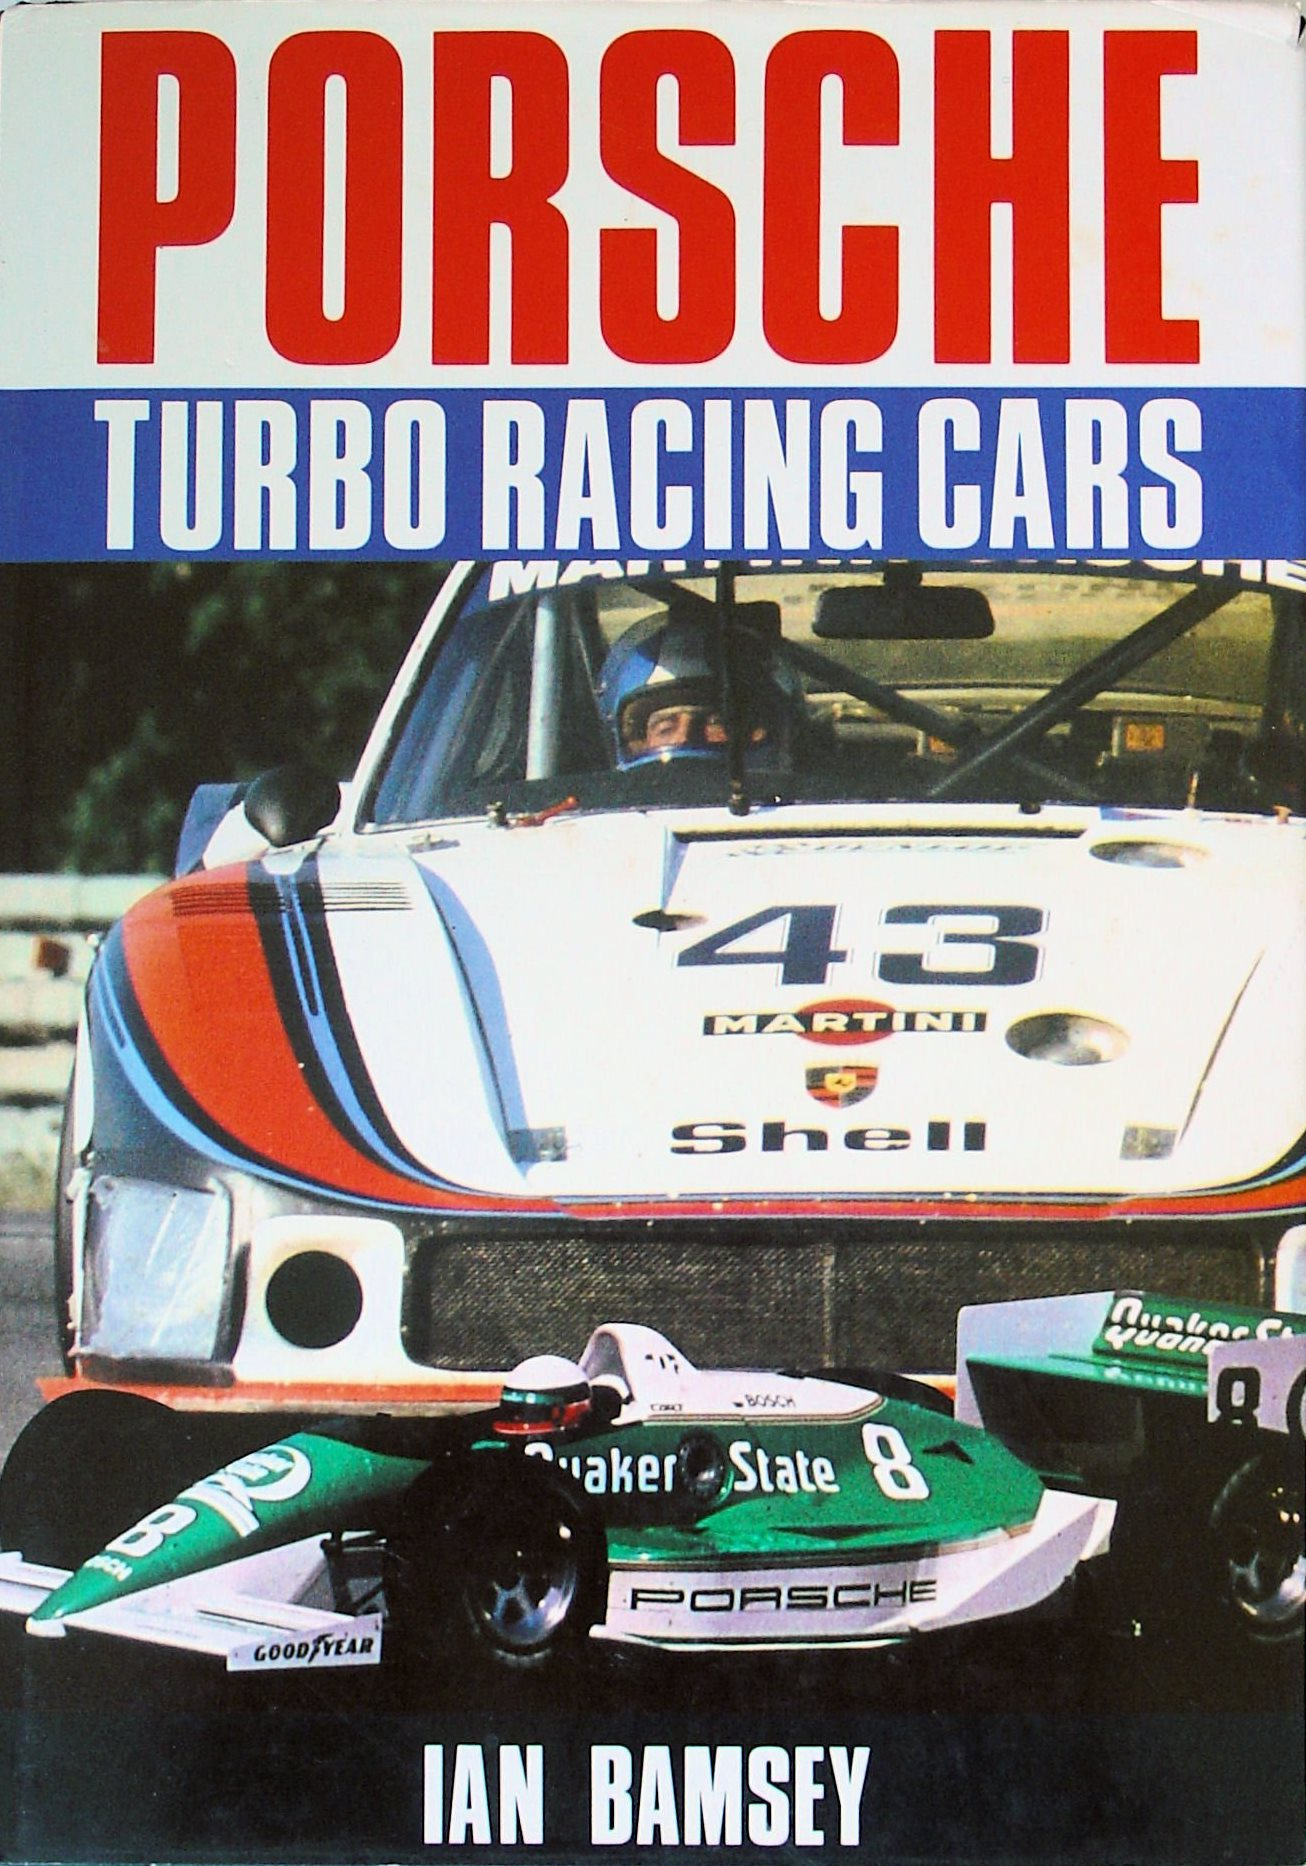 Porsche Turbo Racing Cars